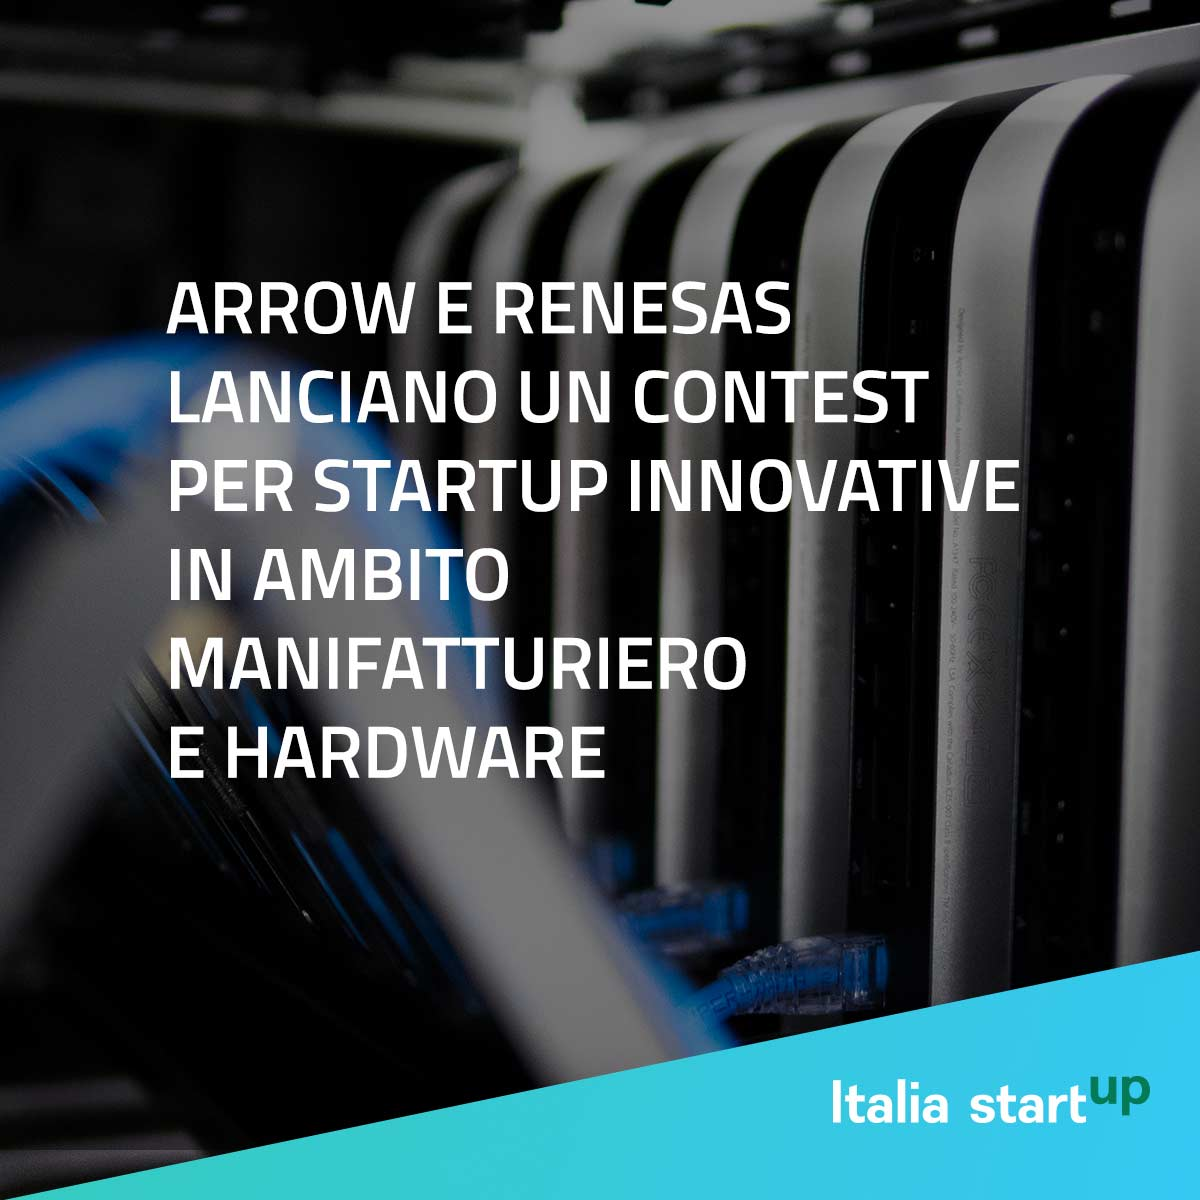 CONTEST ARROW RENESAS